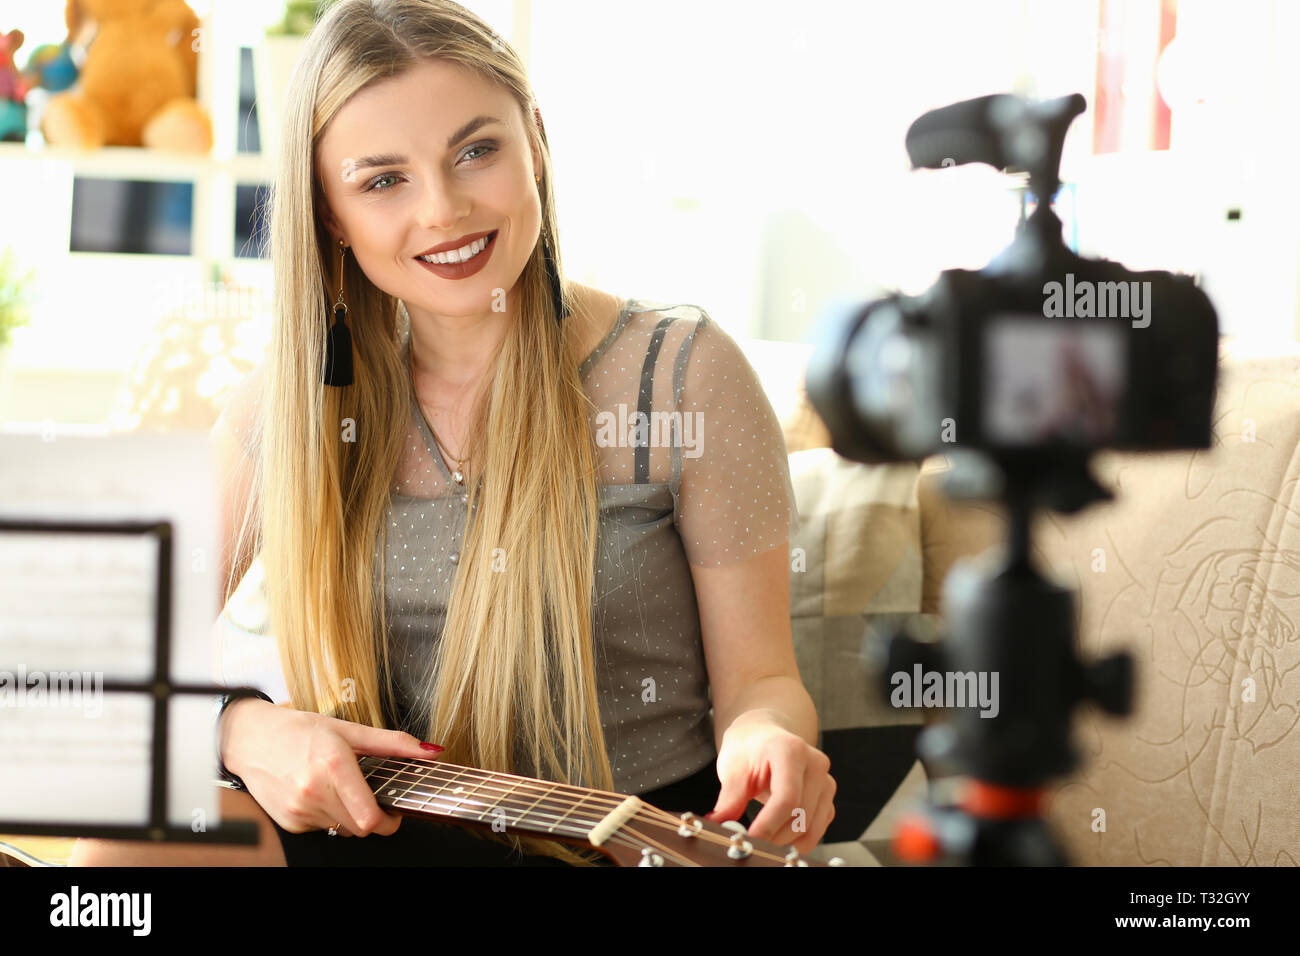 Trendy millenial beauty woman misic blogger - Stock Image